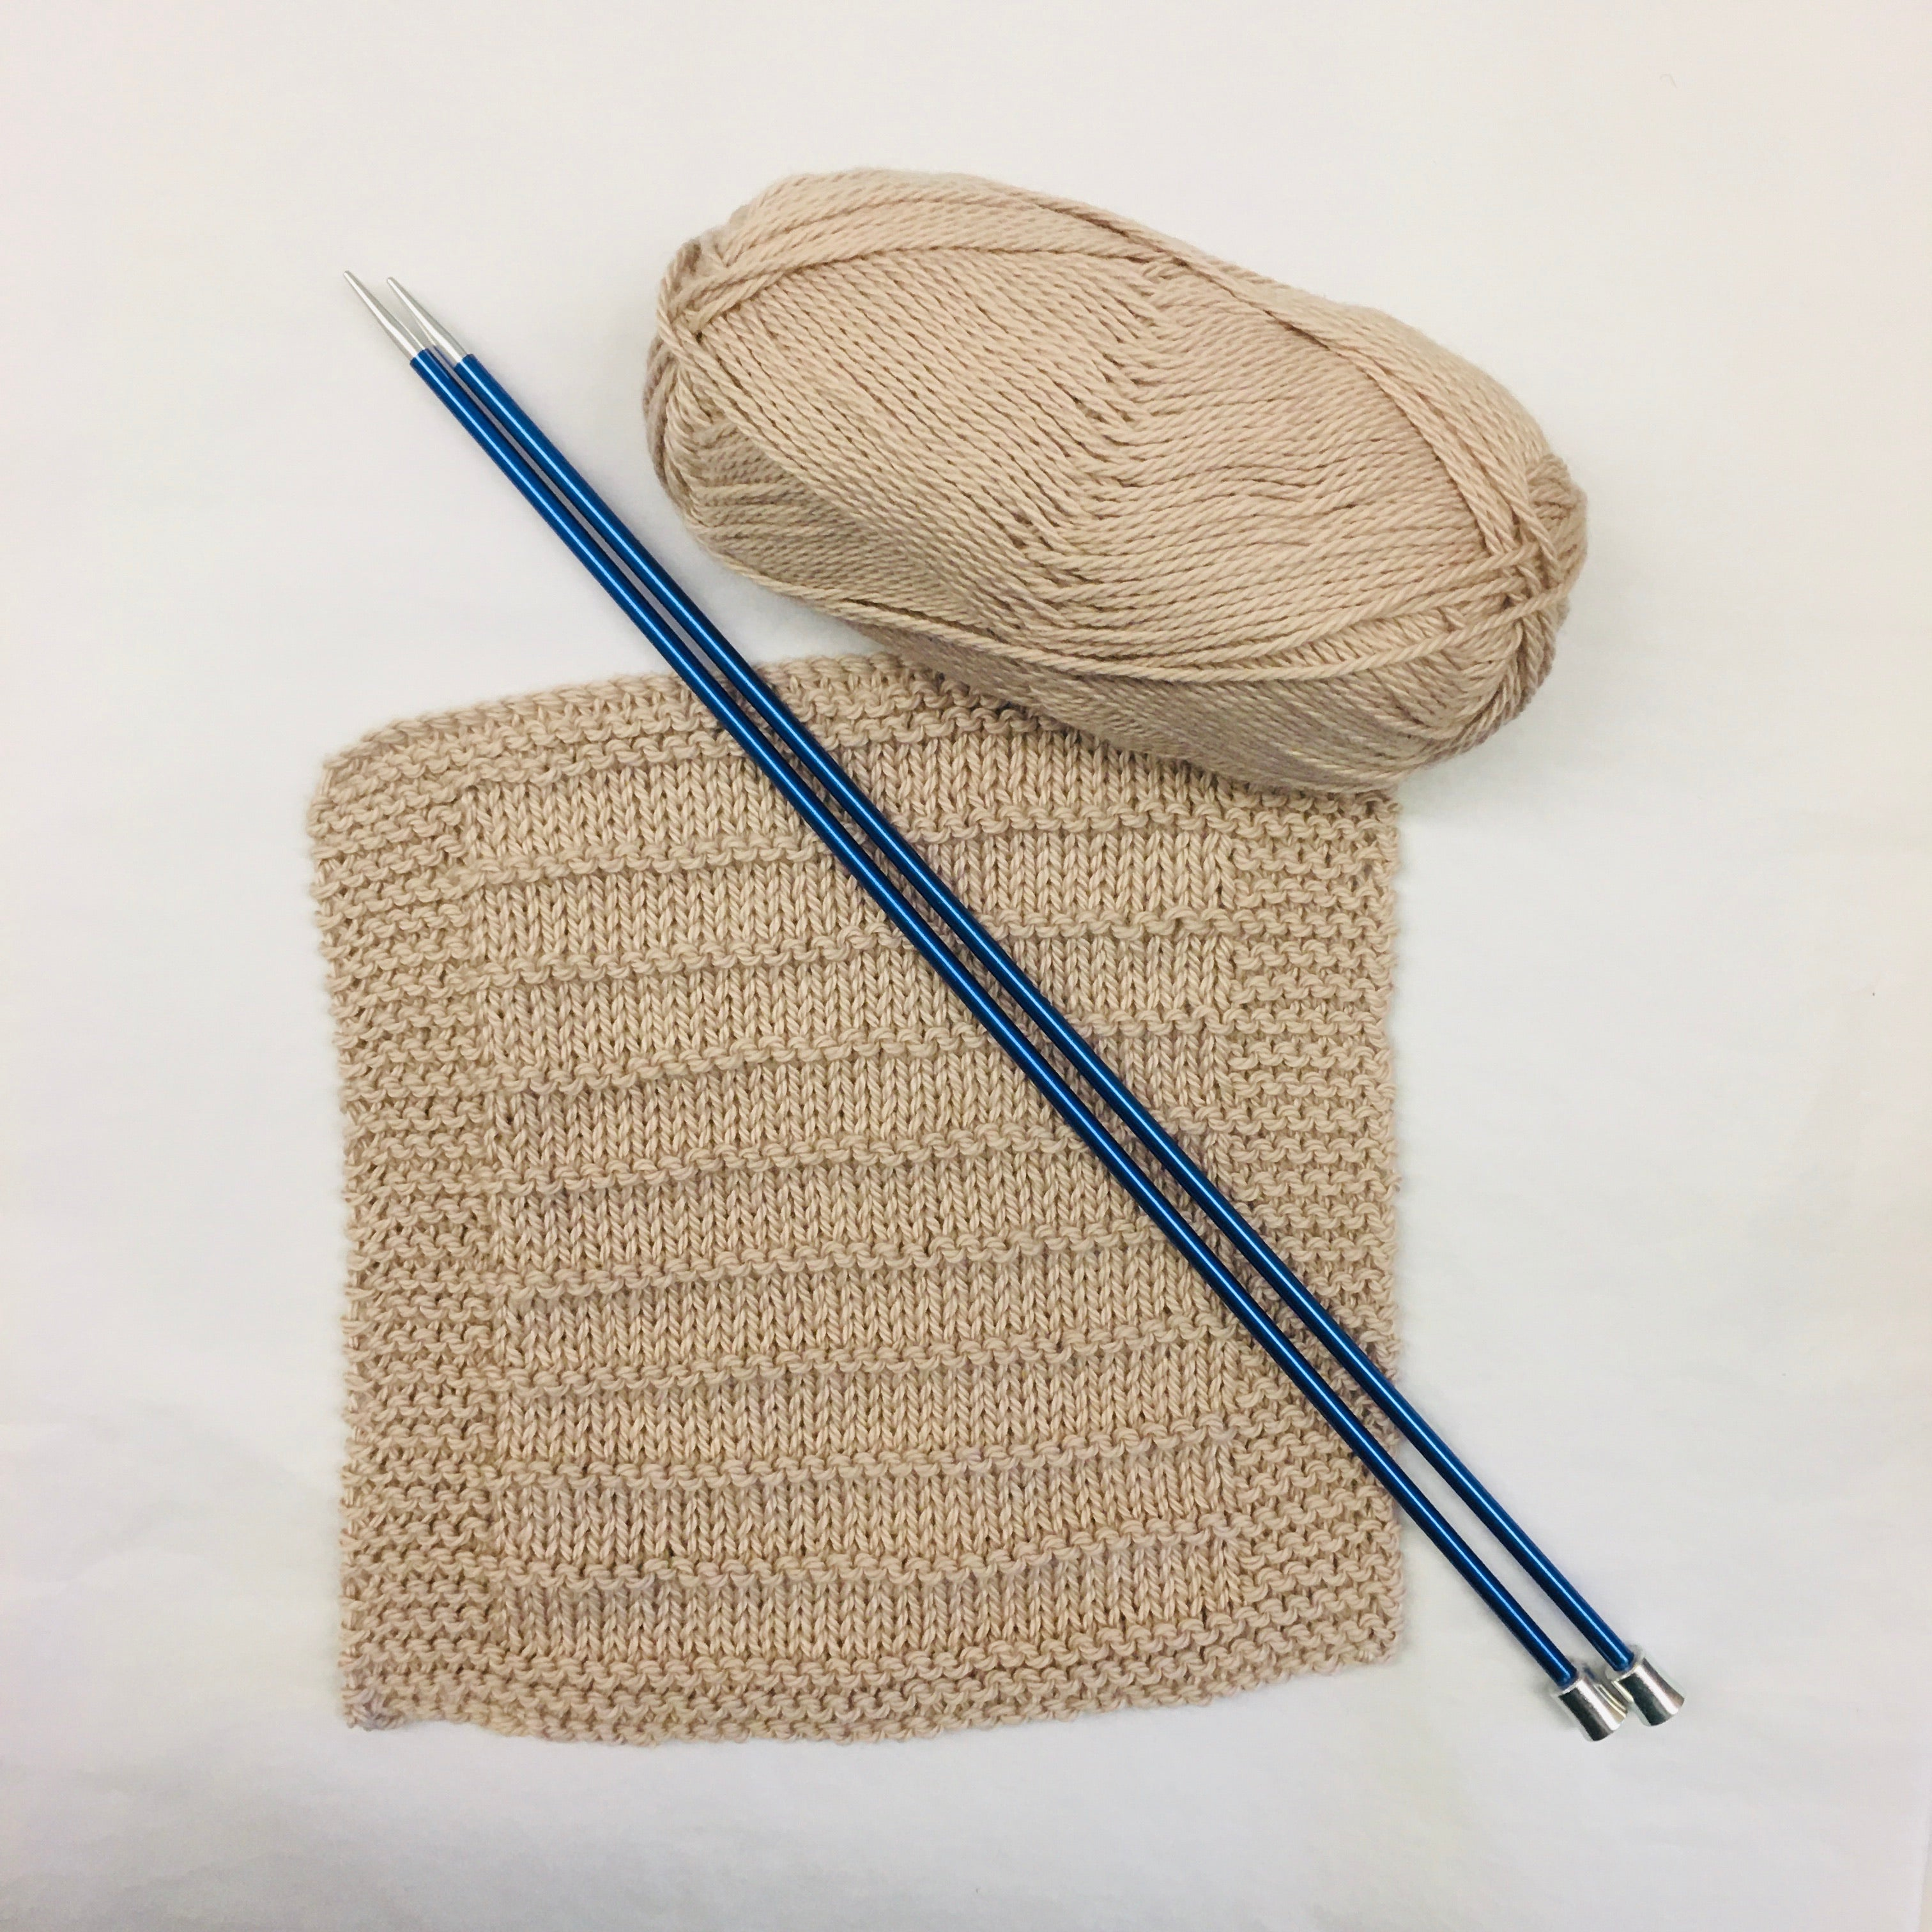 Knitted Dishcloth Kit